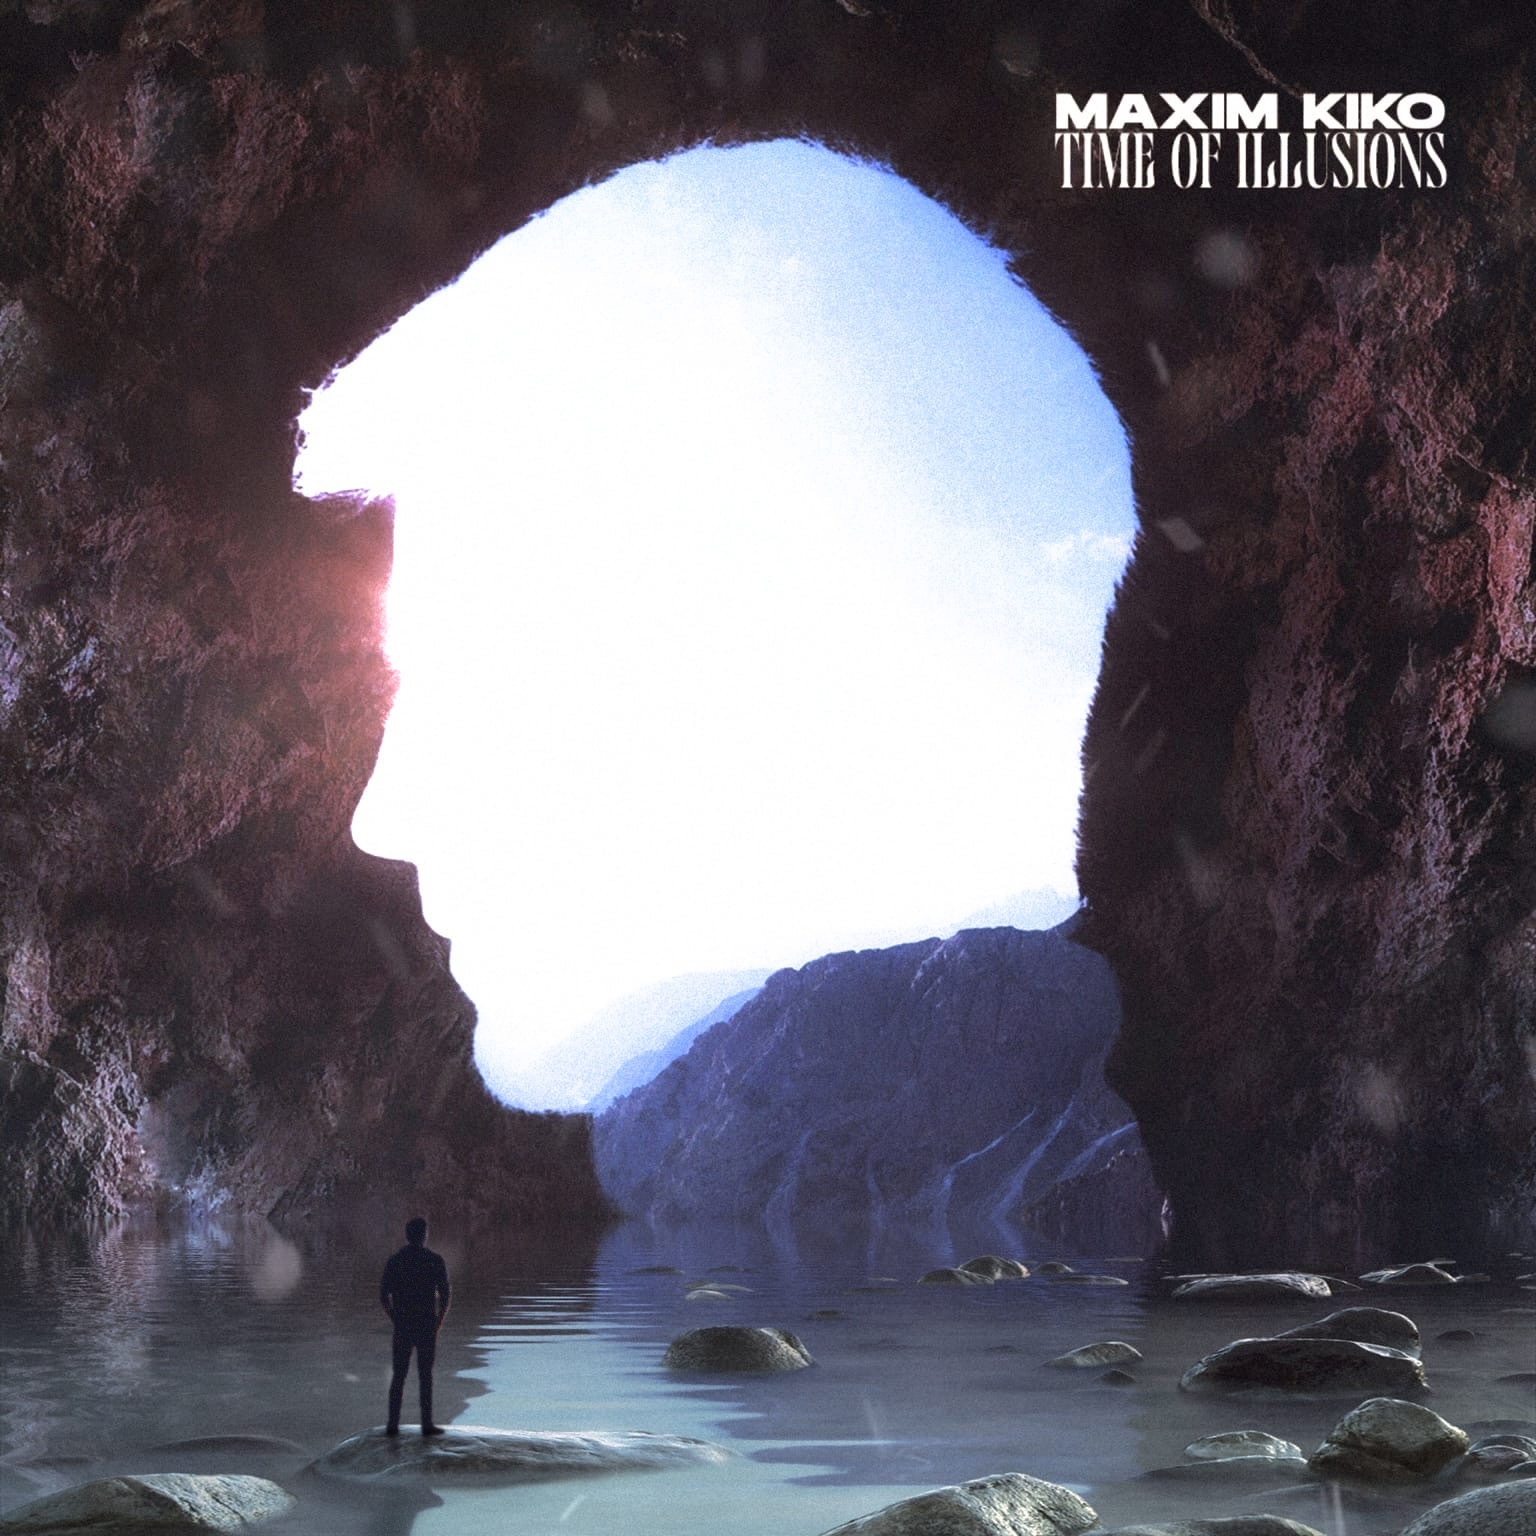 Time of Illusions by Maxim Kiko